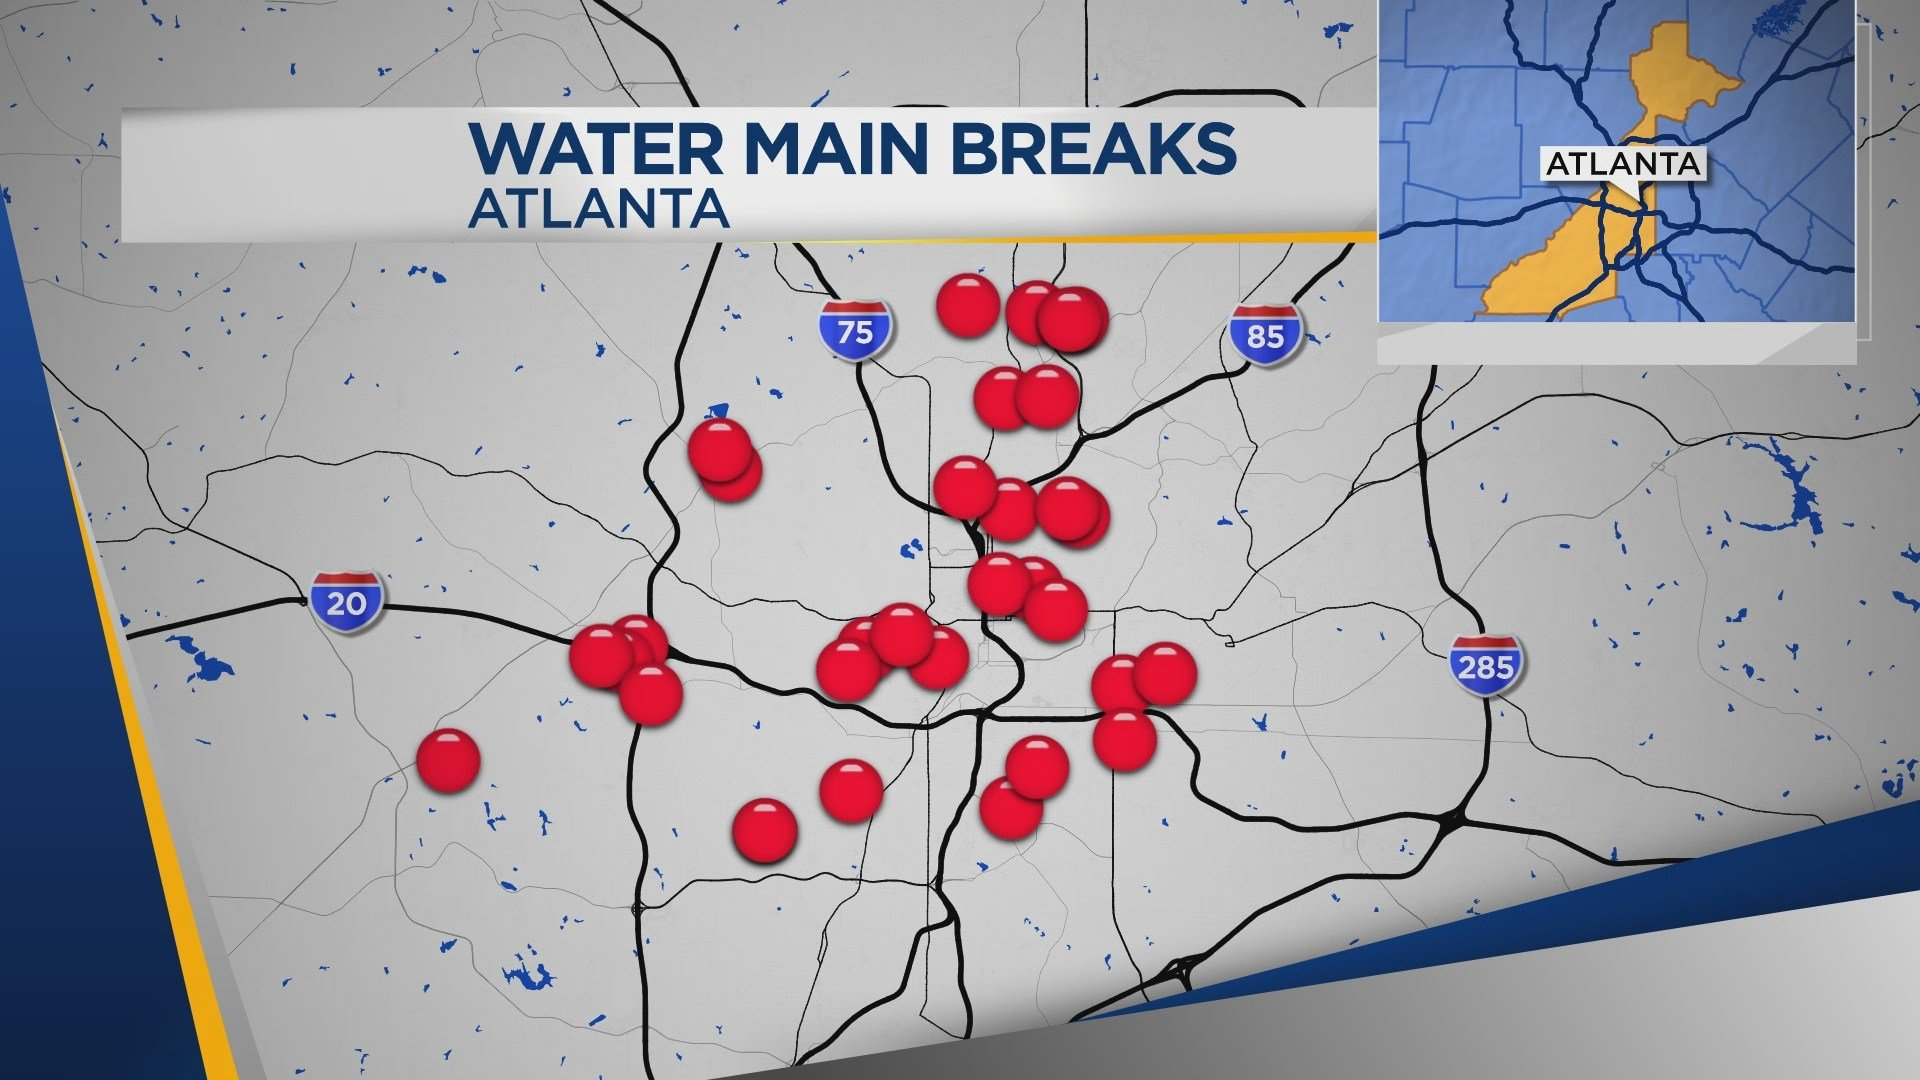 38 water main breaks were reported in Atlanta during a 3 day period